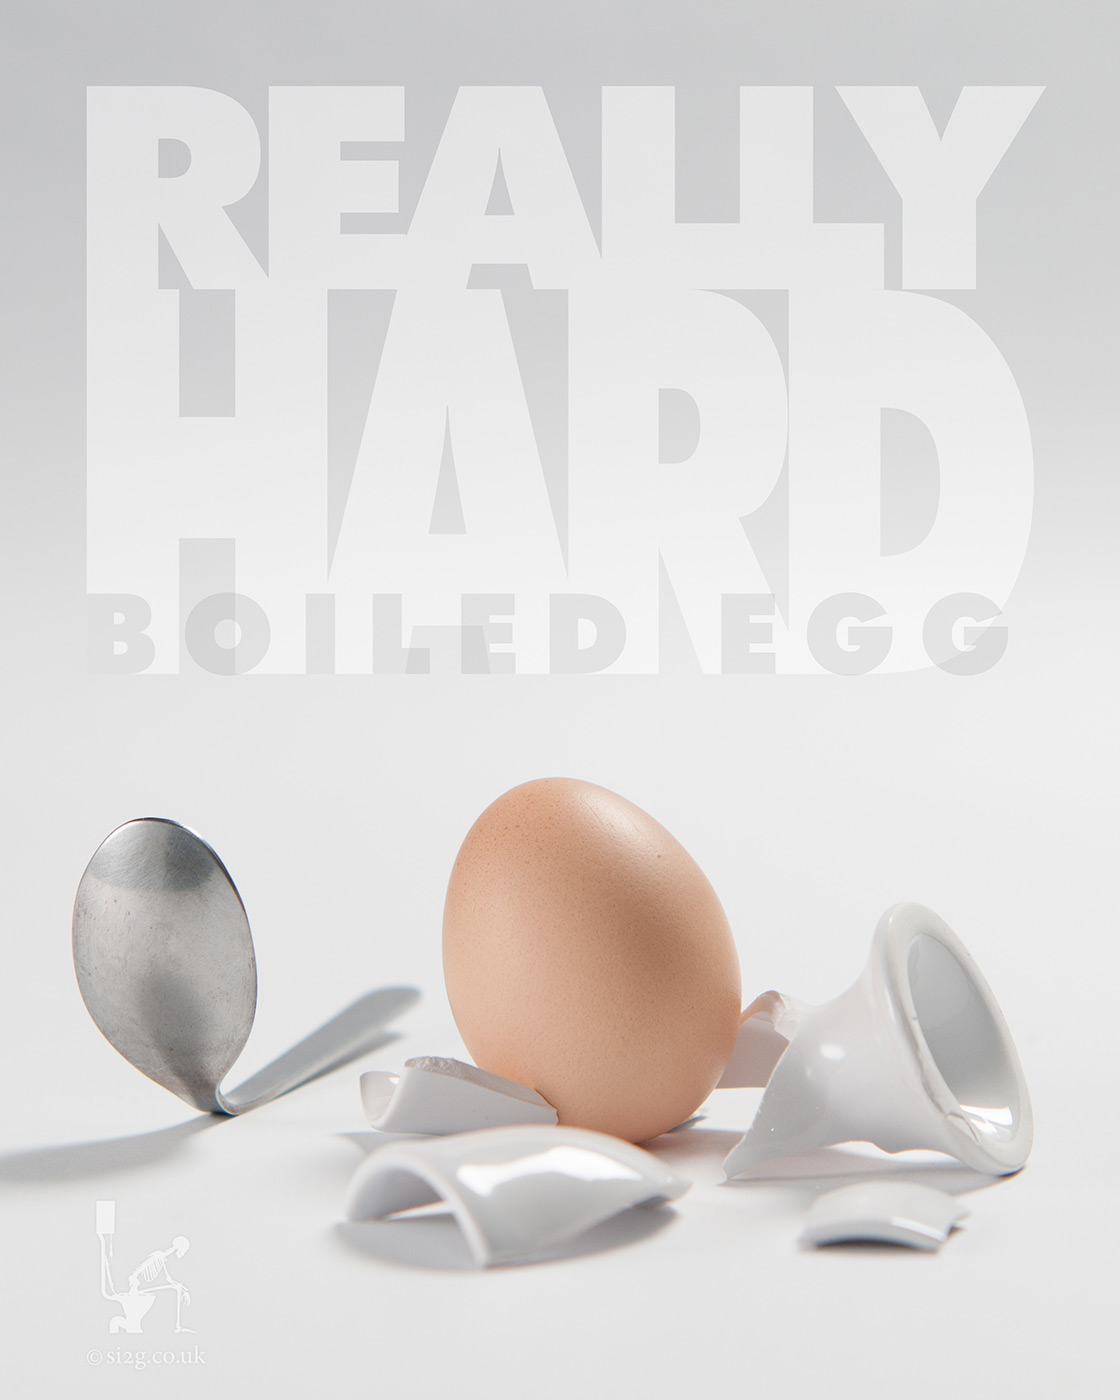 Really Hard Boiled Egg - A playful image showing what happens if you boil an egg for too long, featuring a hard-boiled egg, a smashed egg cup and a bent spoon.